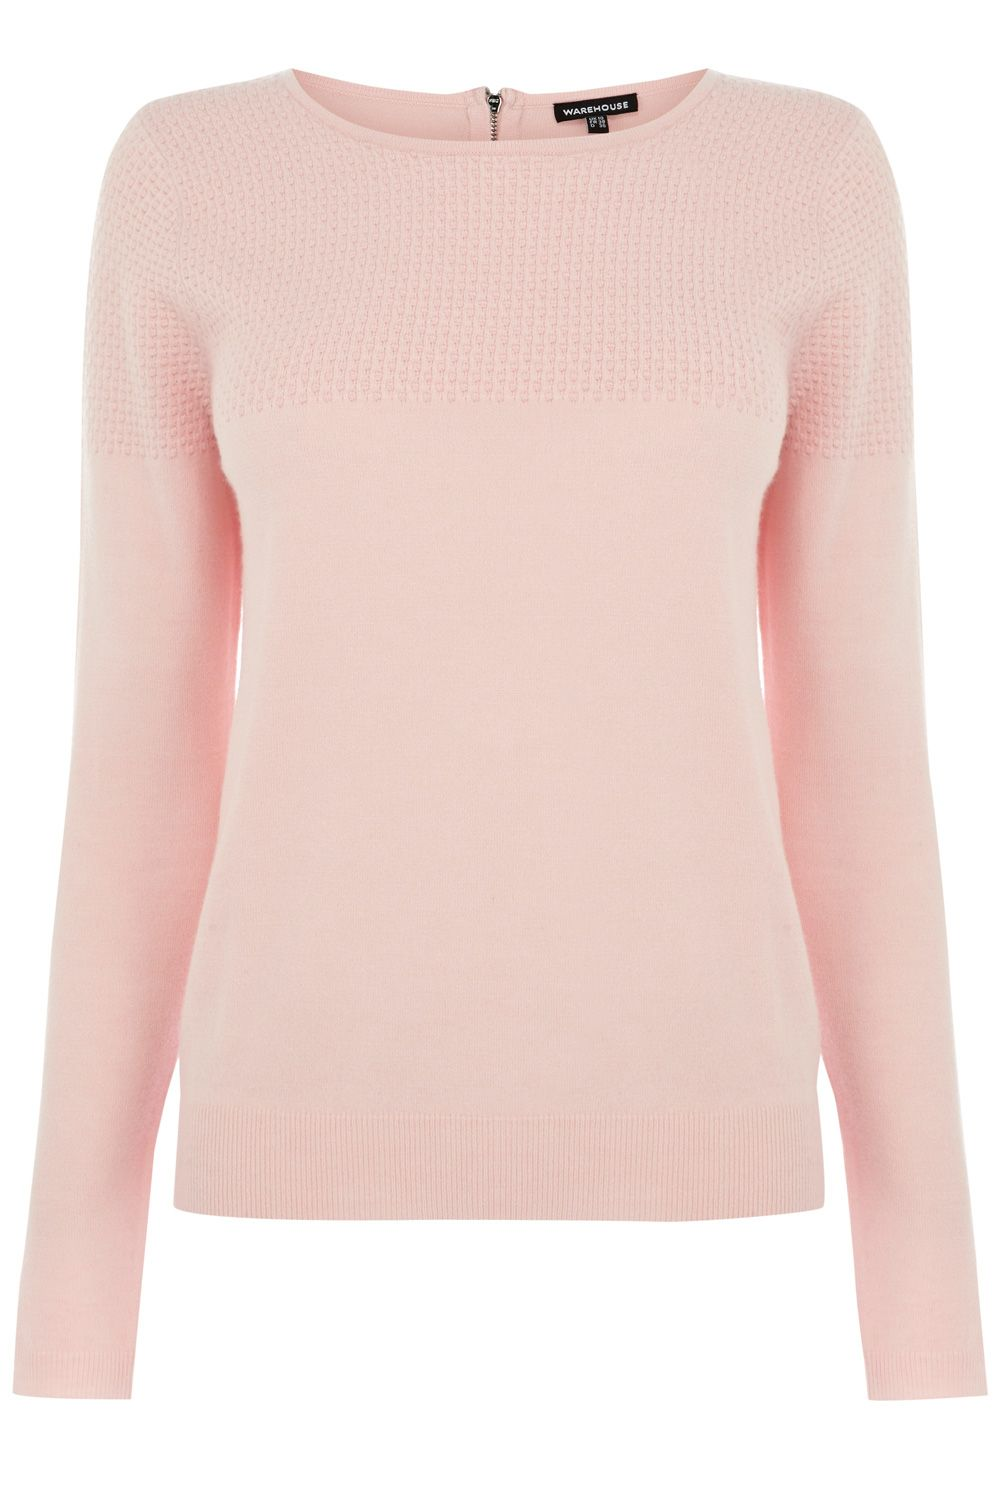 pastel pink sweater I own